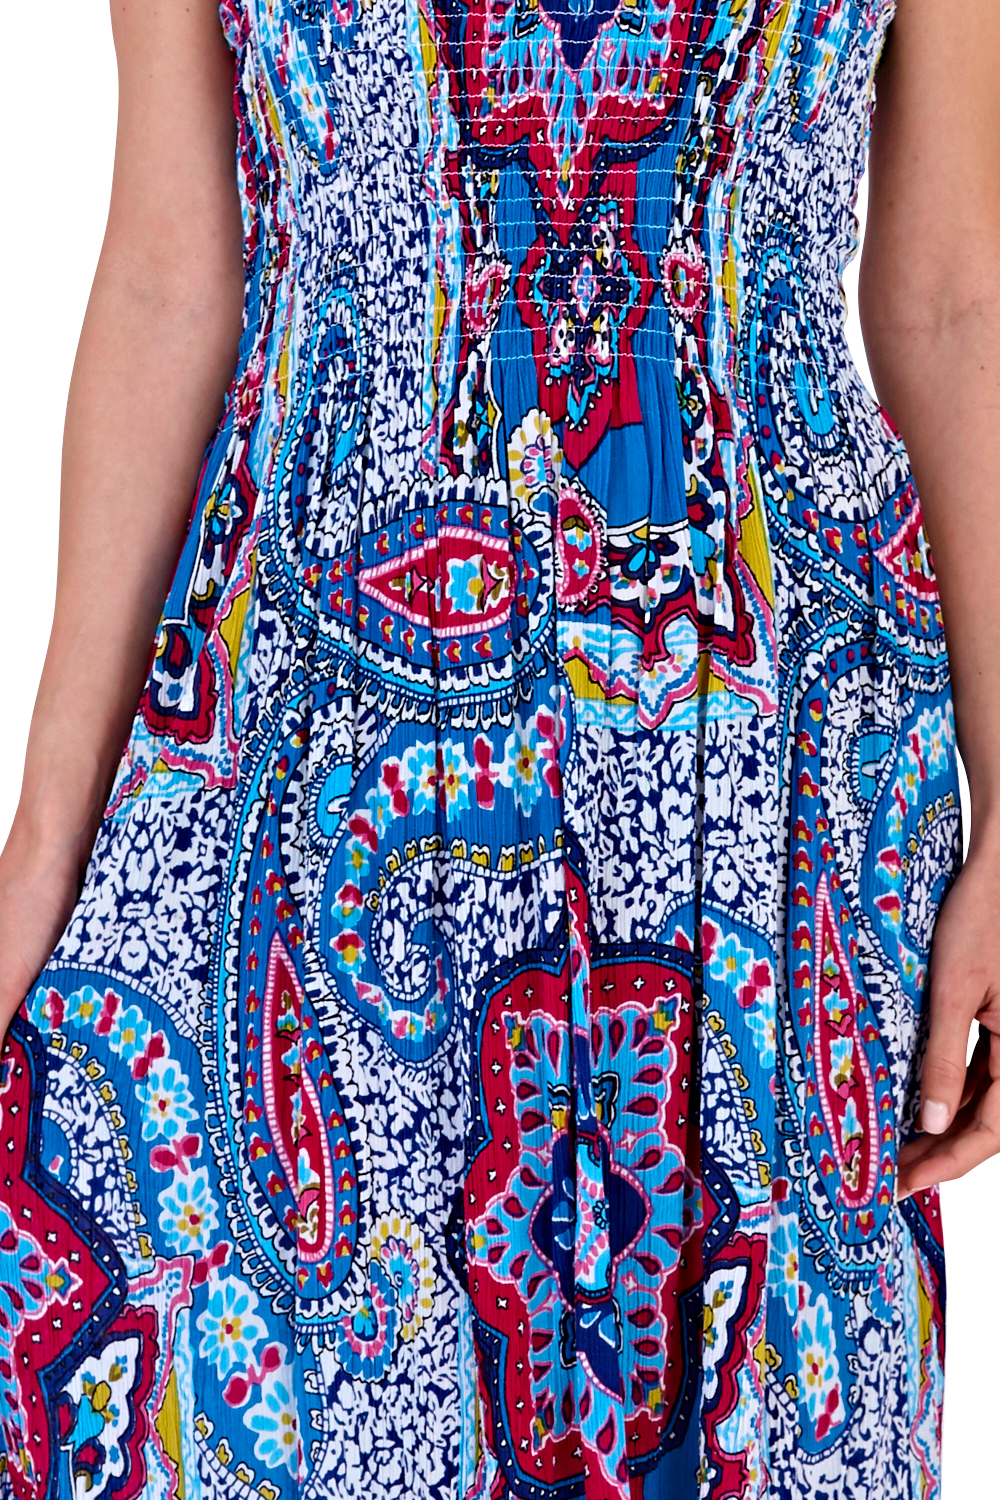 Pistachio-Womens-Patterned-3-In-1-Dresses-Ladies-New-Cotton-Summer-Beach-Skirts thumbnail 18